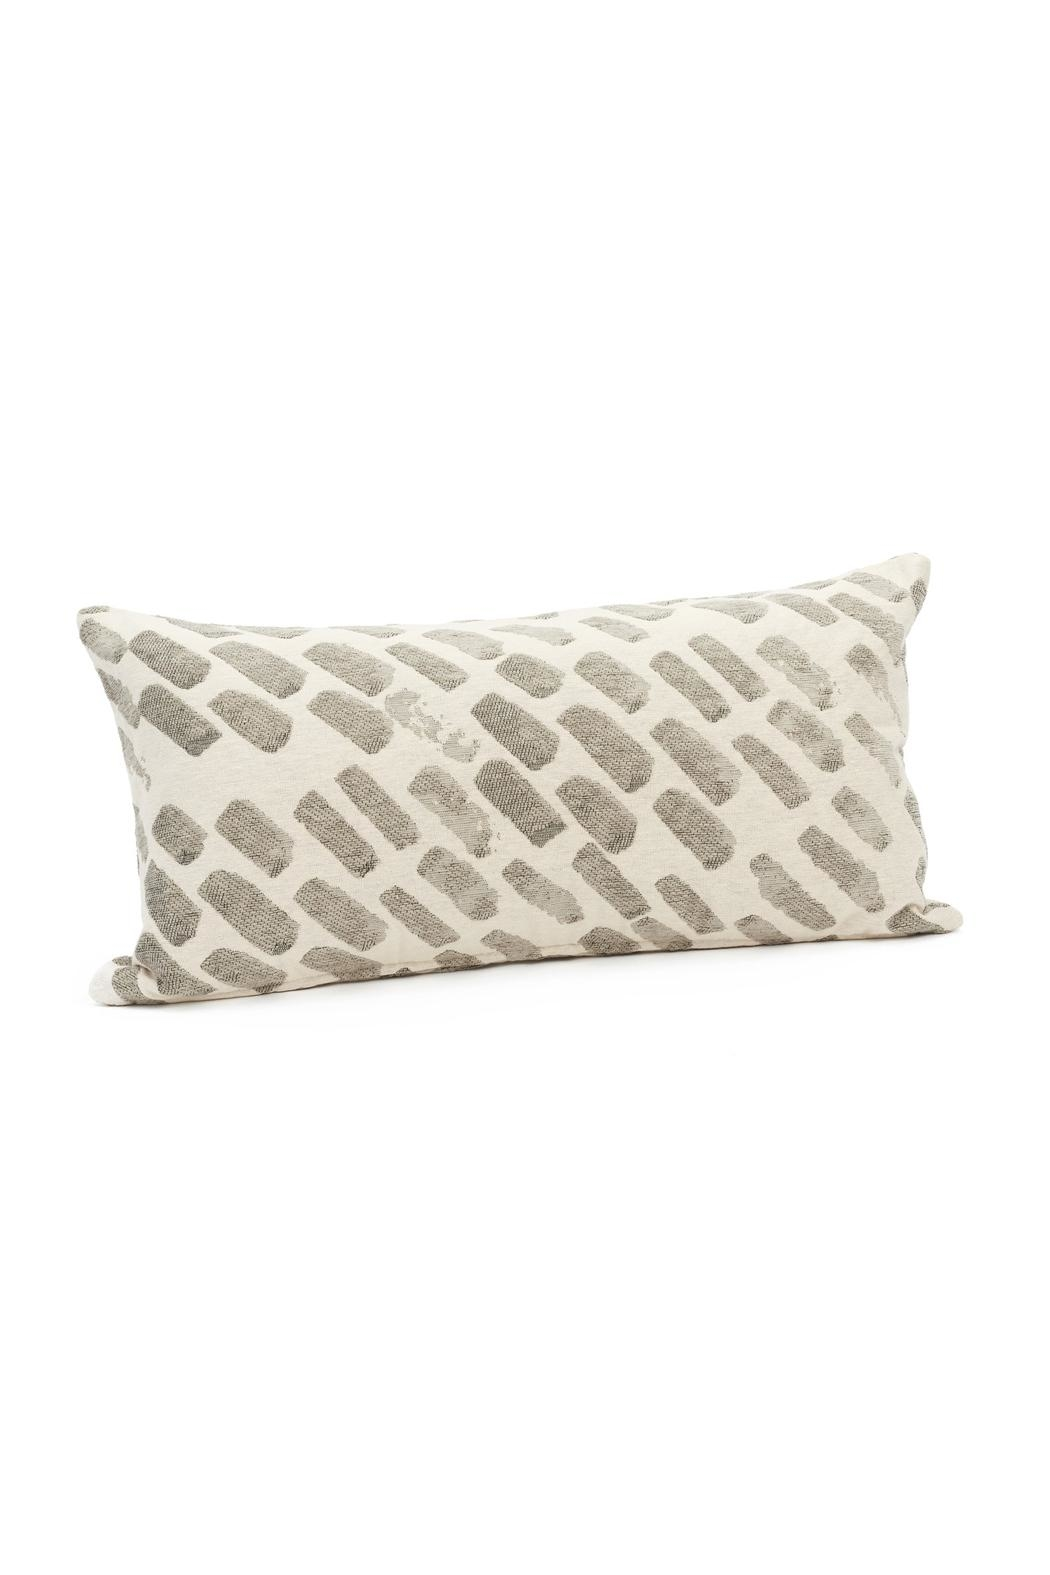 Bonavista Bovi Home Modesa Printed Pillow - Main Image